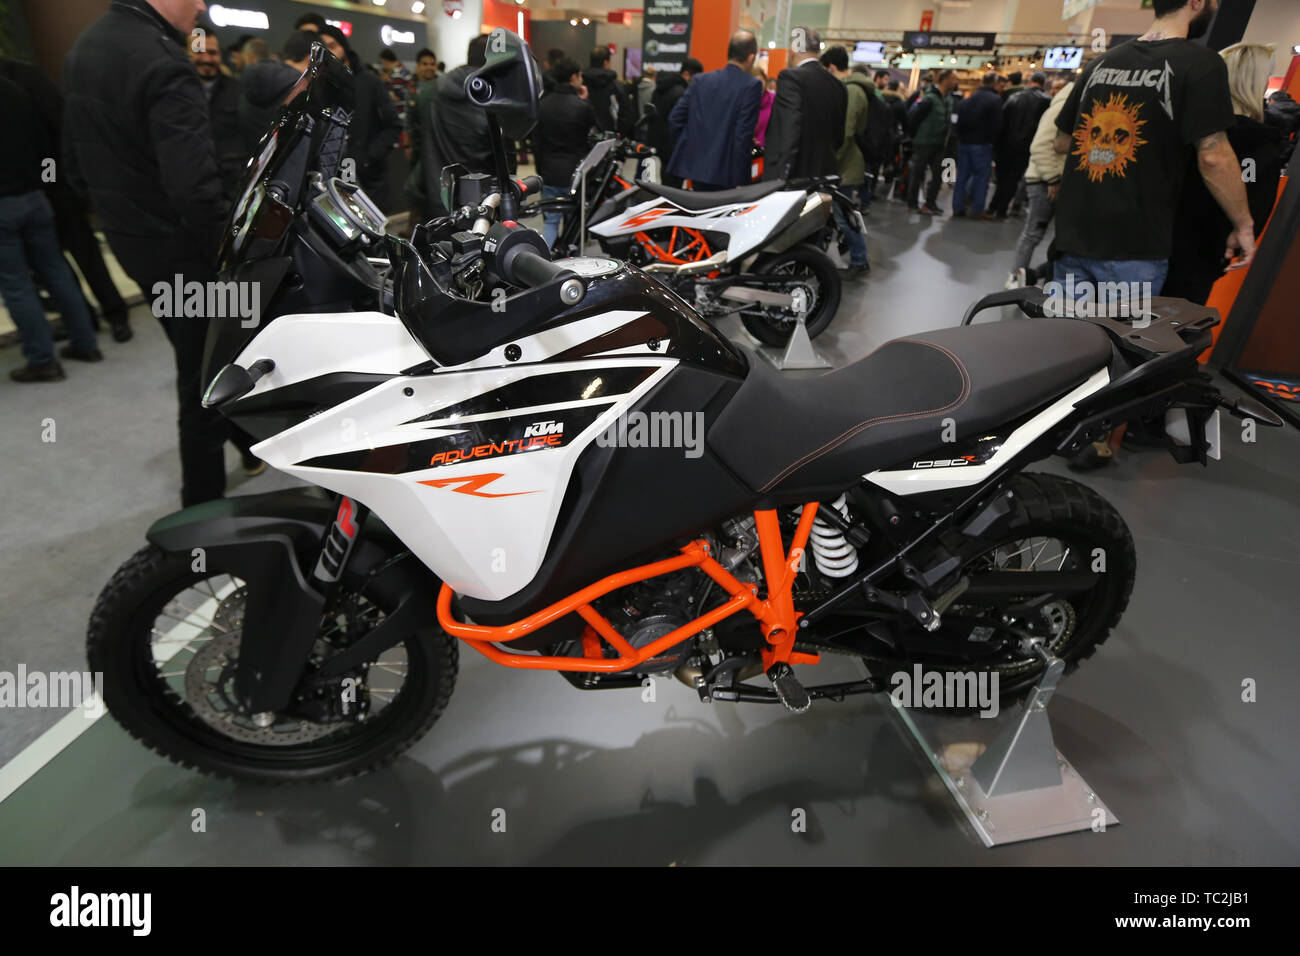 ISTANBUL, TURKEY - FEBRUARY 23, 2019: KTM 1090 on display at Motobike Istanbul in Istanbul Exhibition Center - Stock Image